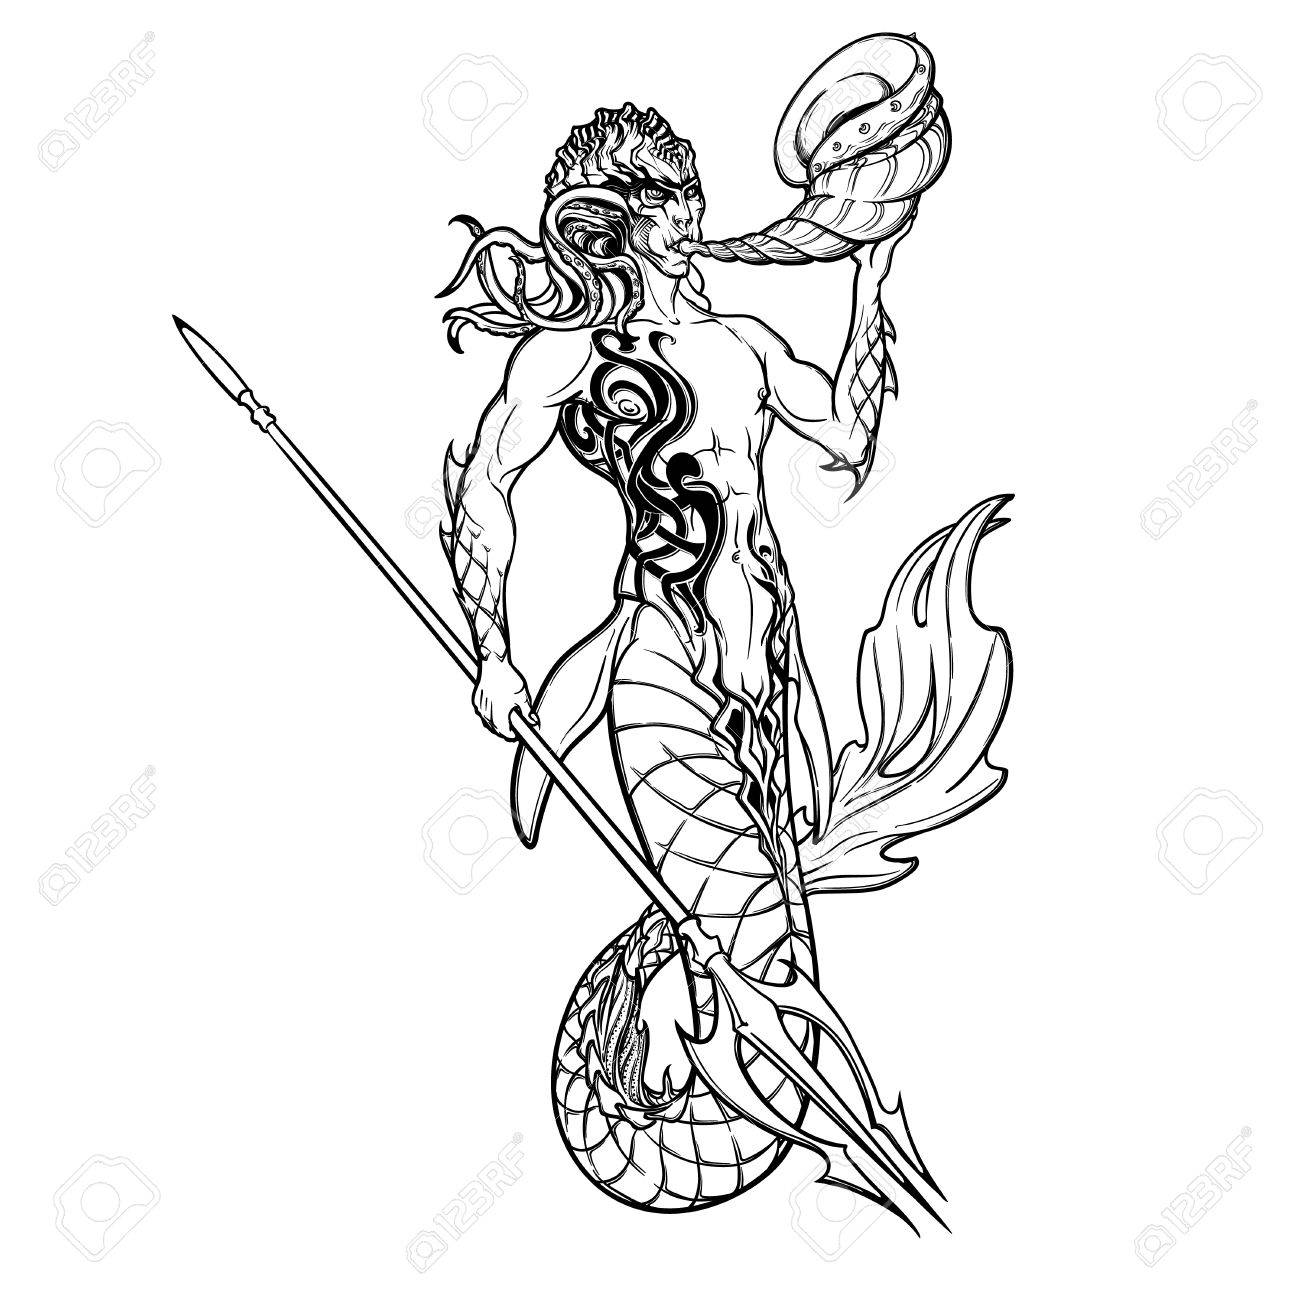 1300x1300 Merman Or Triton Mythological Ocean Creature Armed With Trident